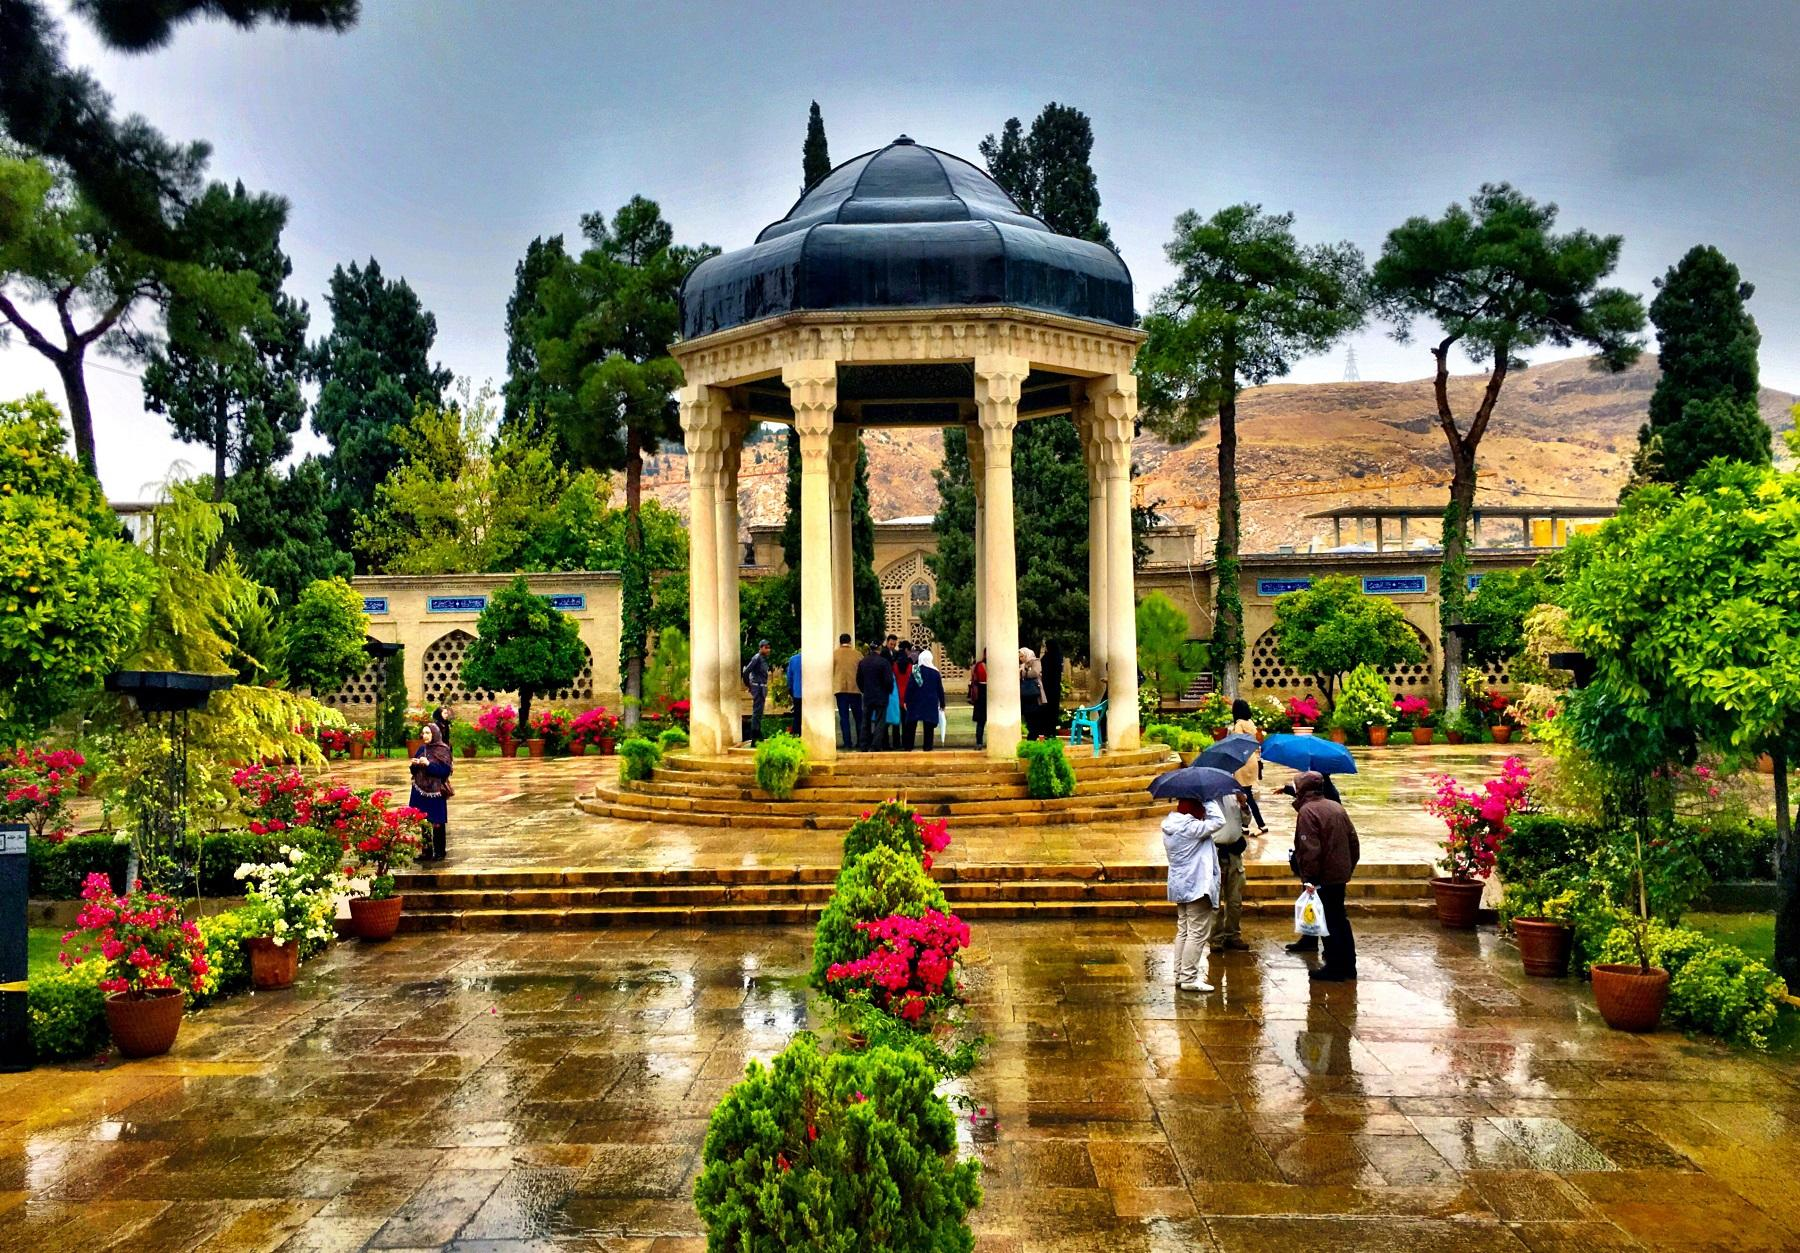 images/1d/6a/hafez-tomb.jpg